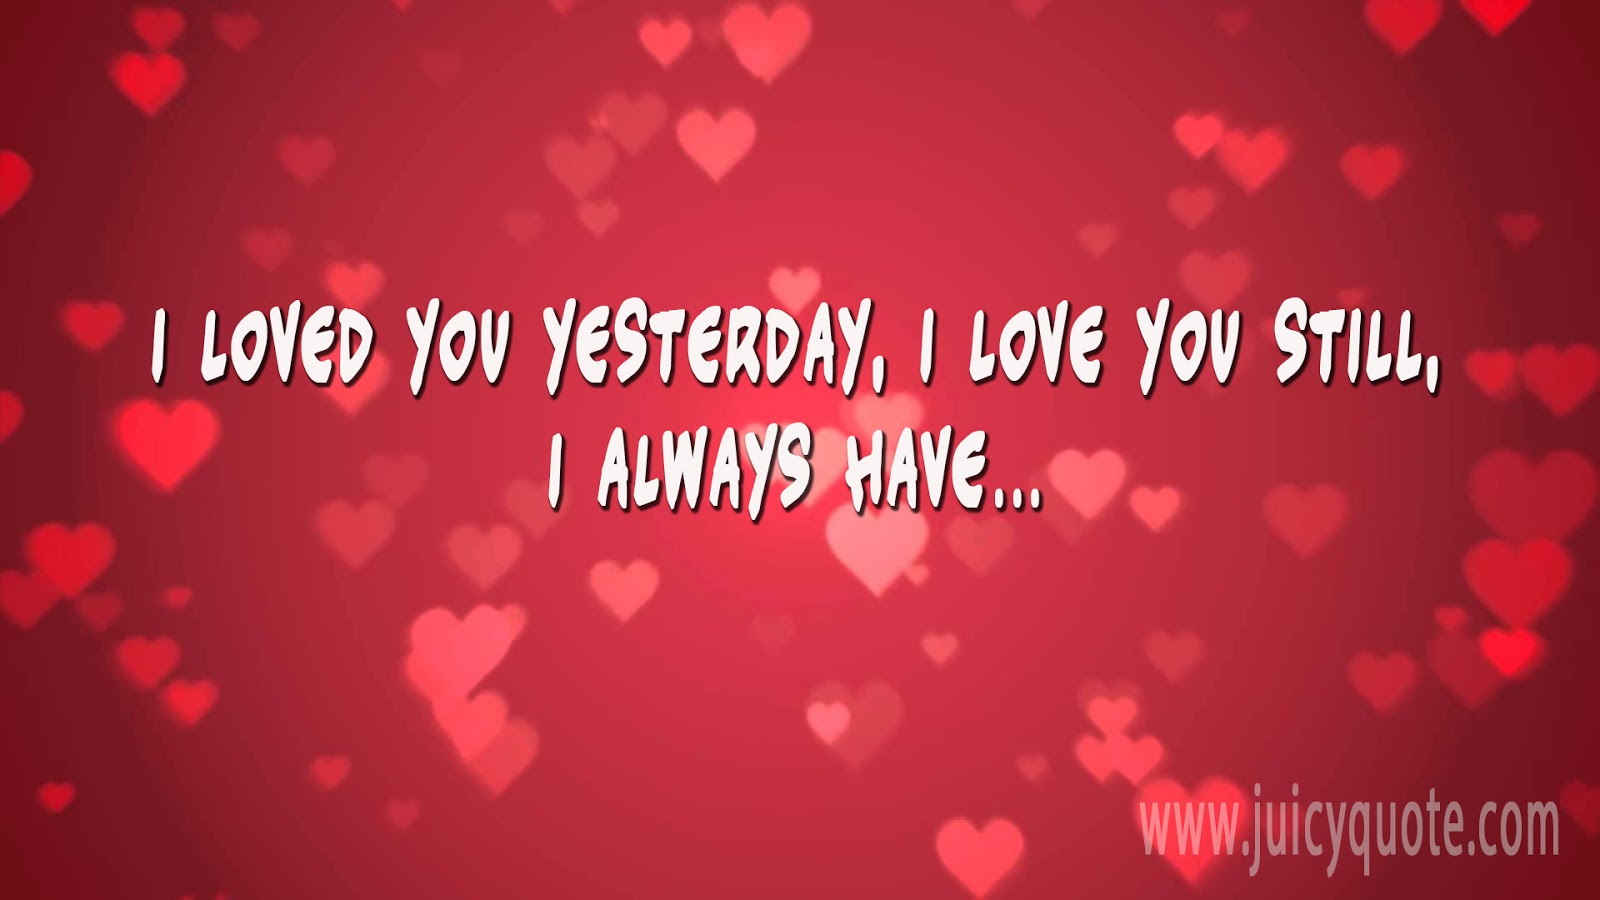 Quotes Romantic Romantic Valentines Day Quotes And Messages  Juicy Quote